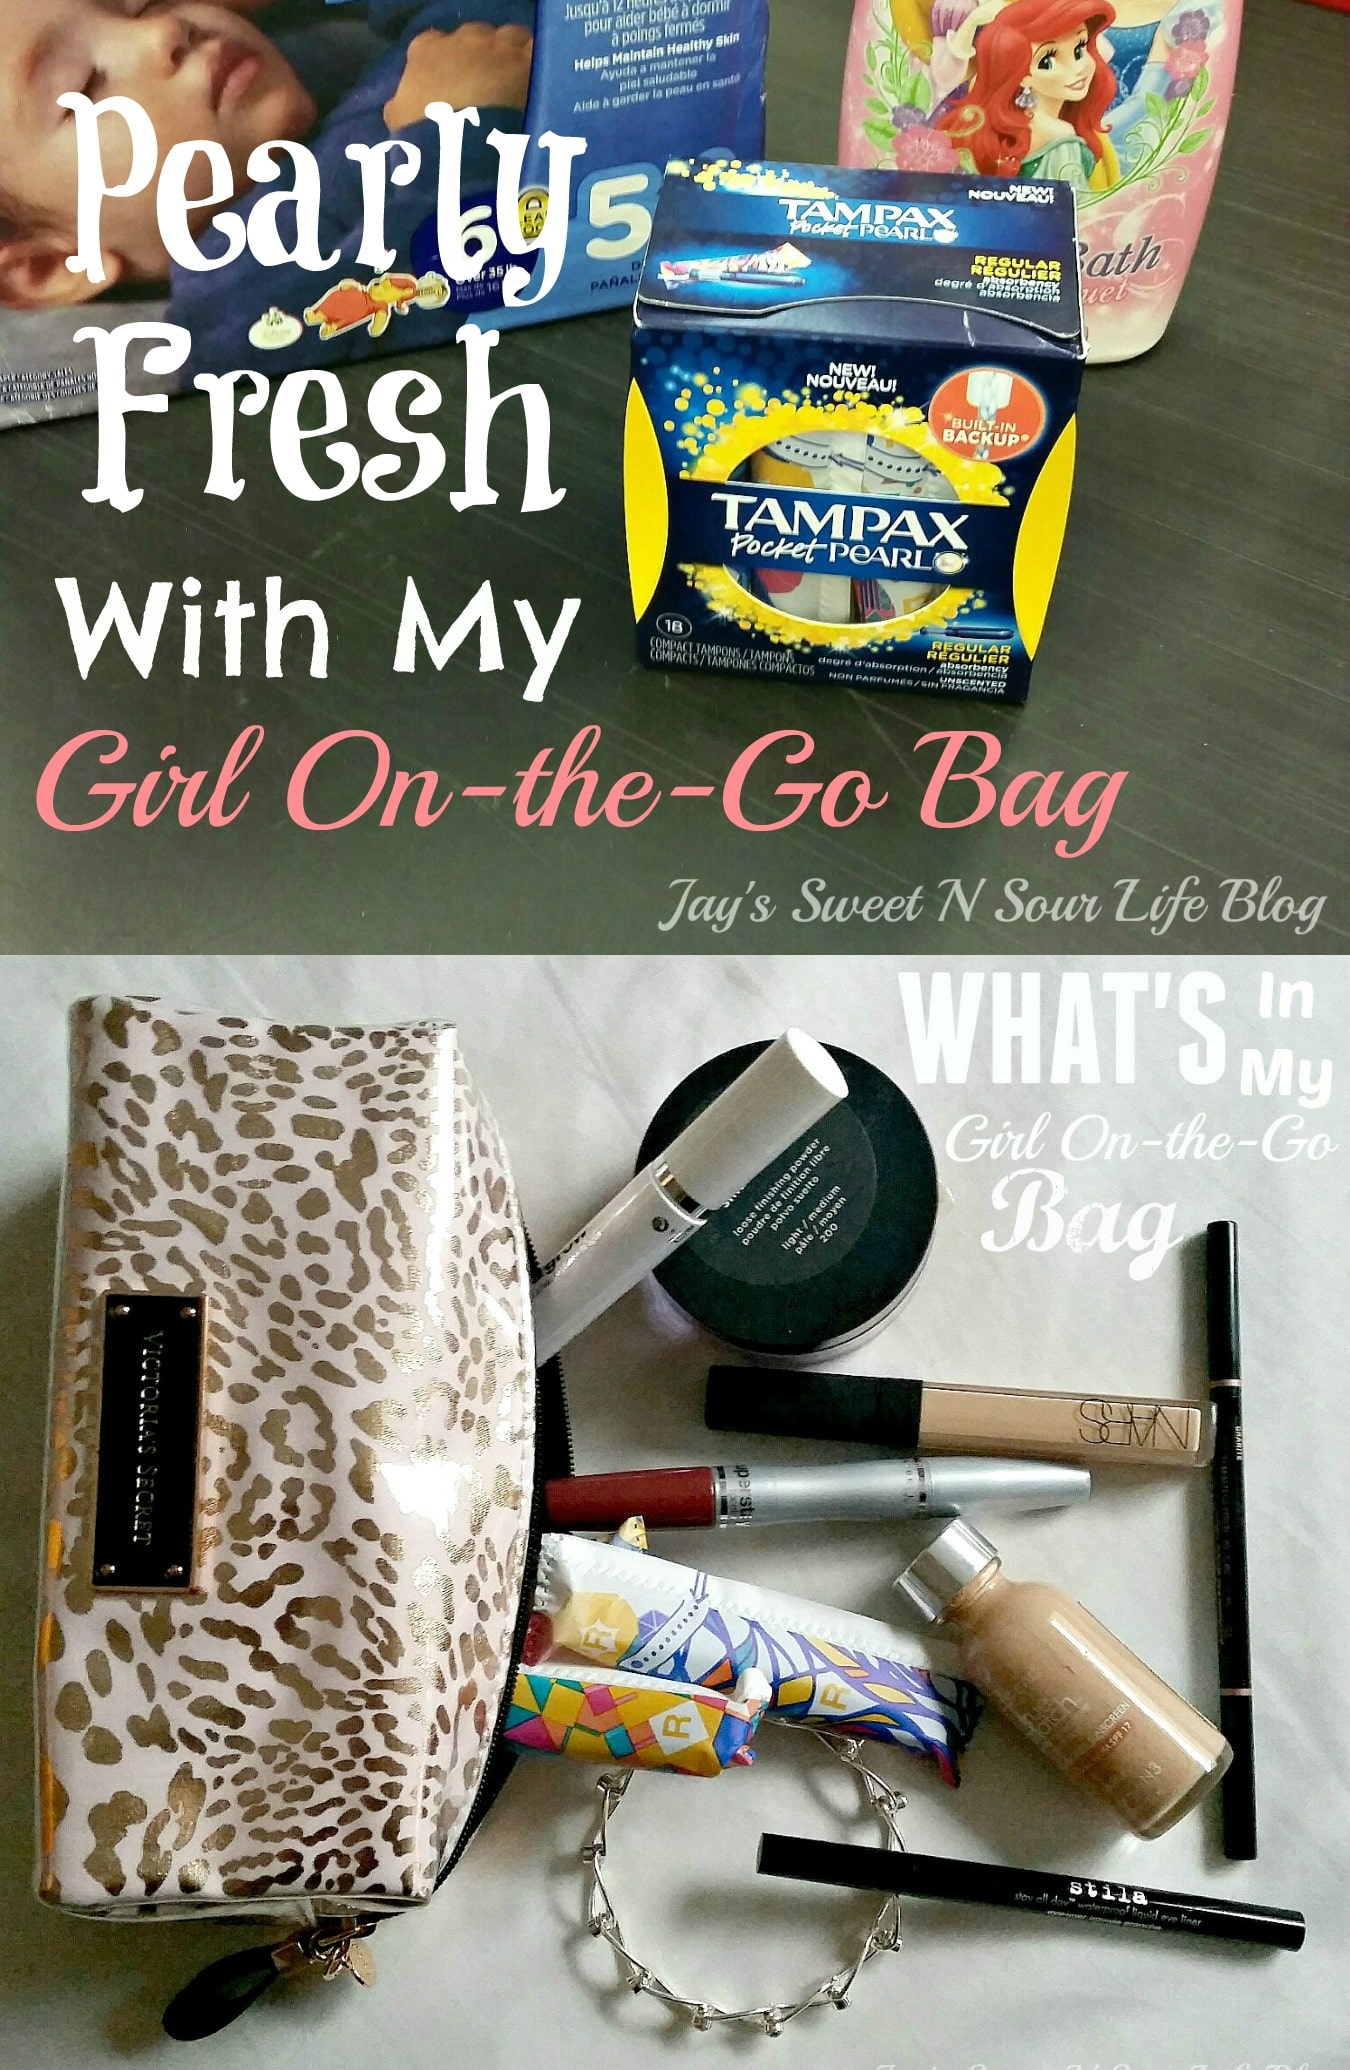 Pearly Fresh With My Girl On-the-Go Bag